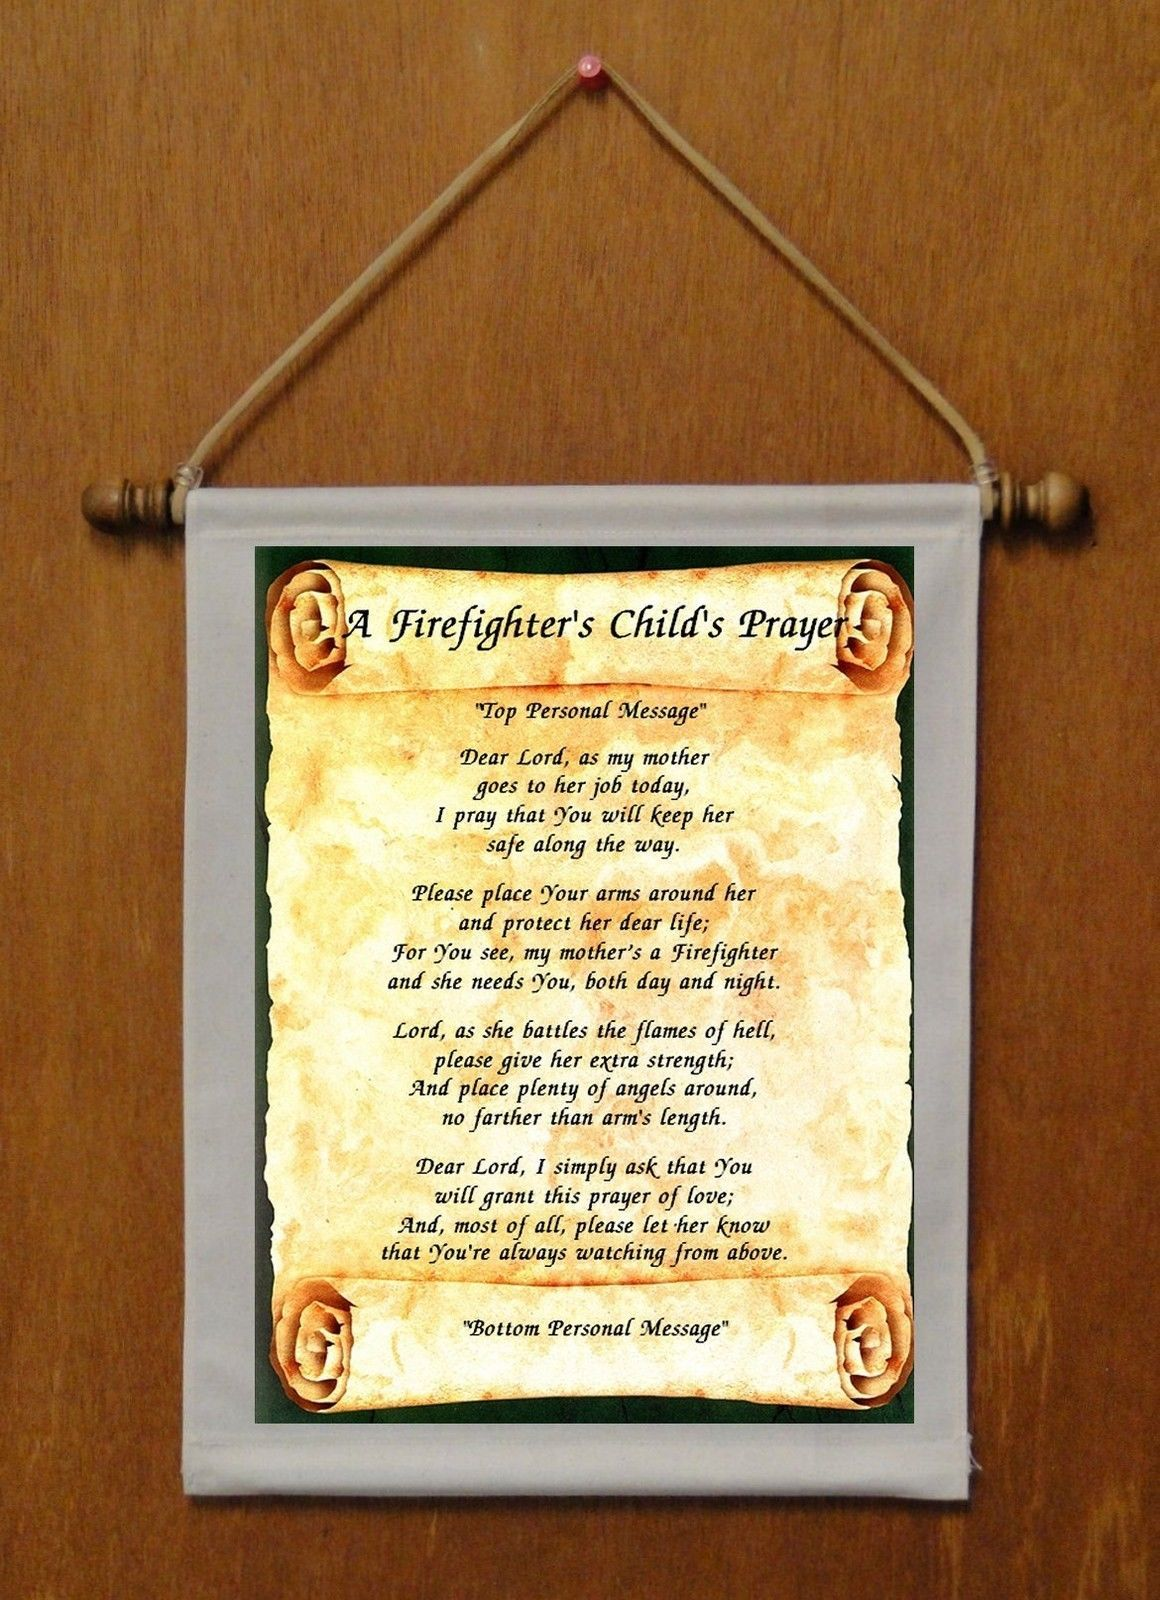 A Firefighter's Child's Prayer (for Mom) - Personalized Wall Hanging (302-1m)